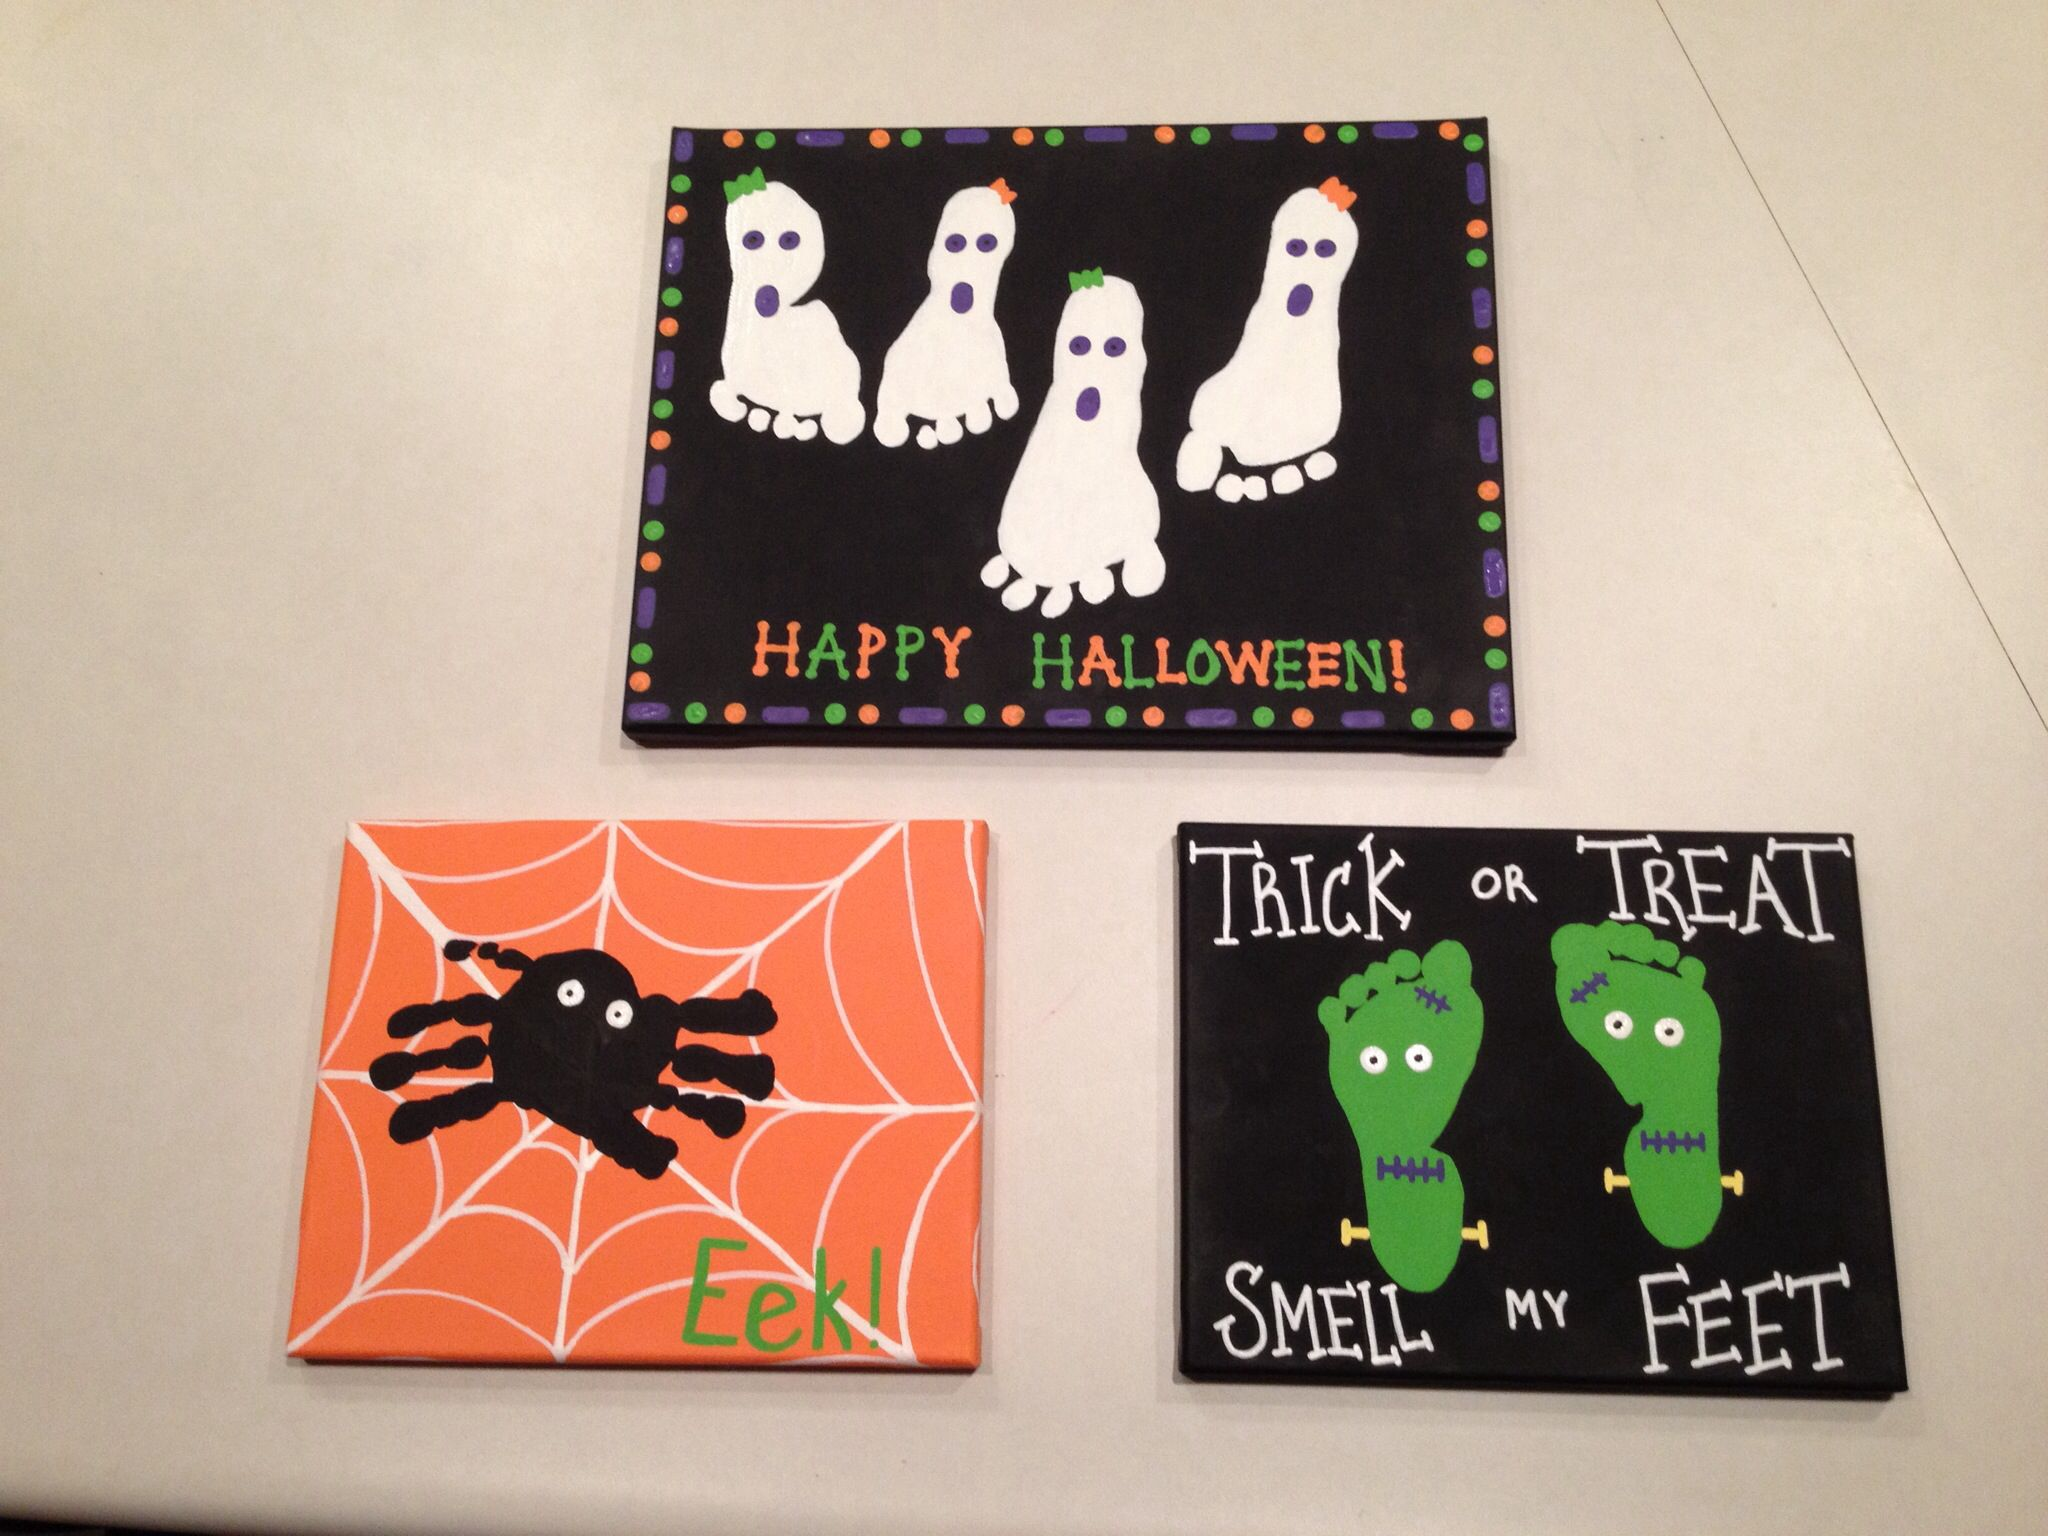 Pin by Kylie Osborne on Fun things to try Pinterest Craft - cute homemade halloween decorations